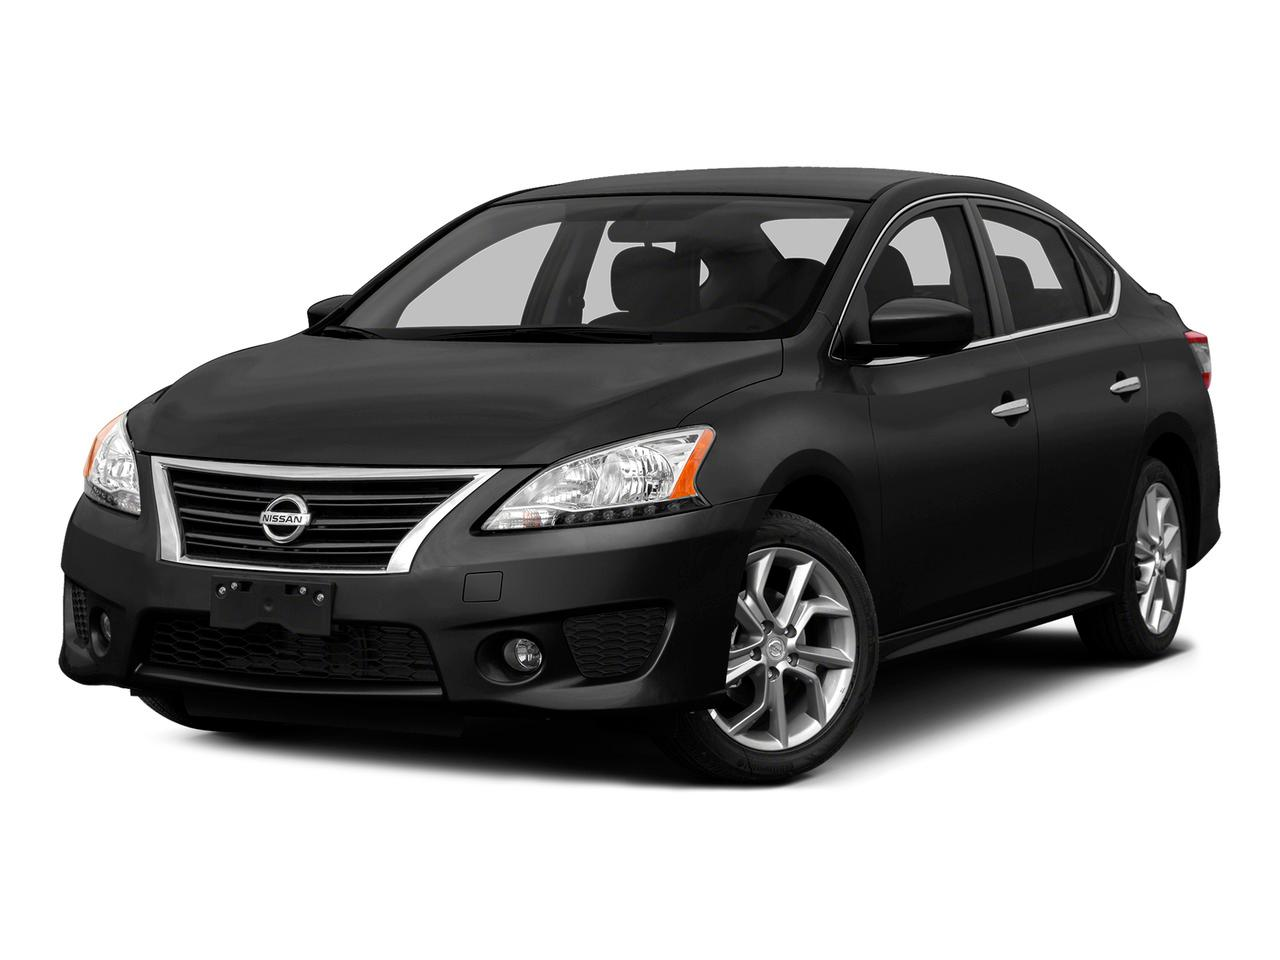 2015 Nissan Sentra Vehicle Photo in San Angelo, TX 76901